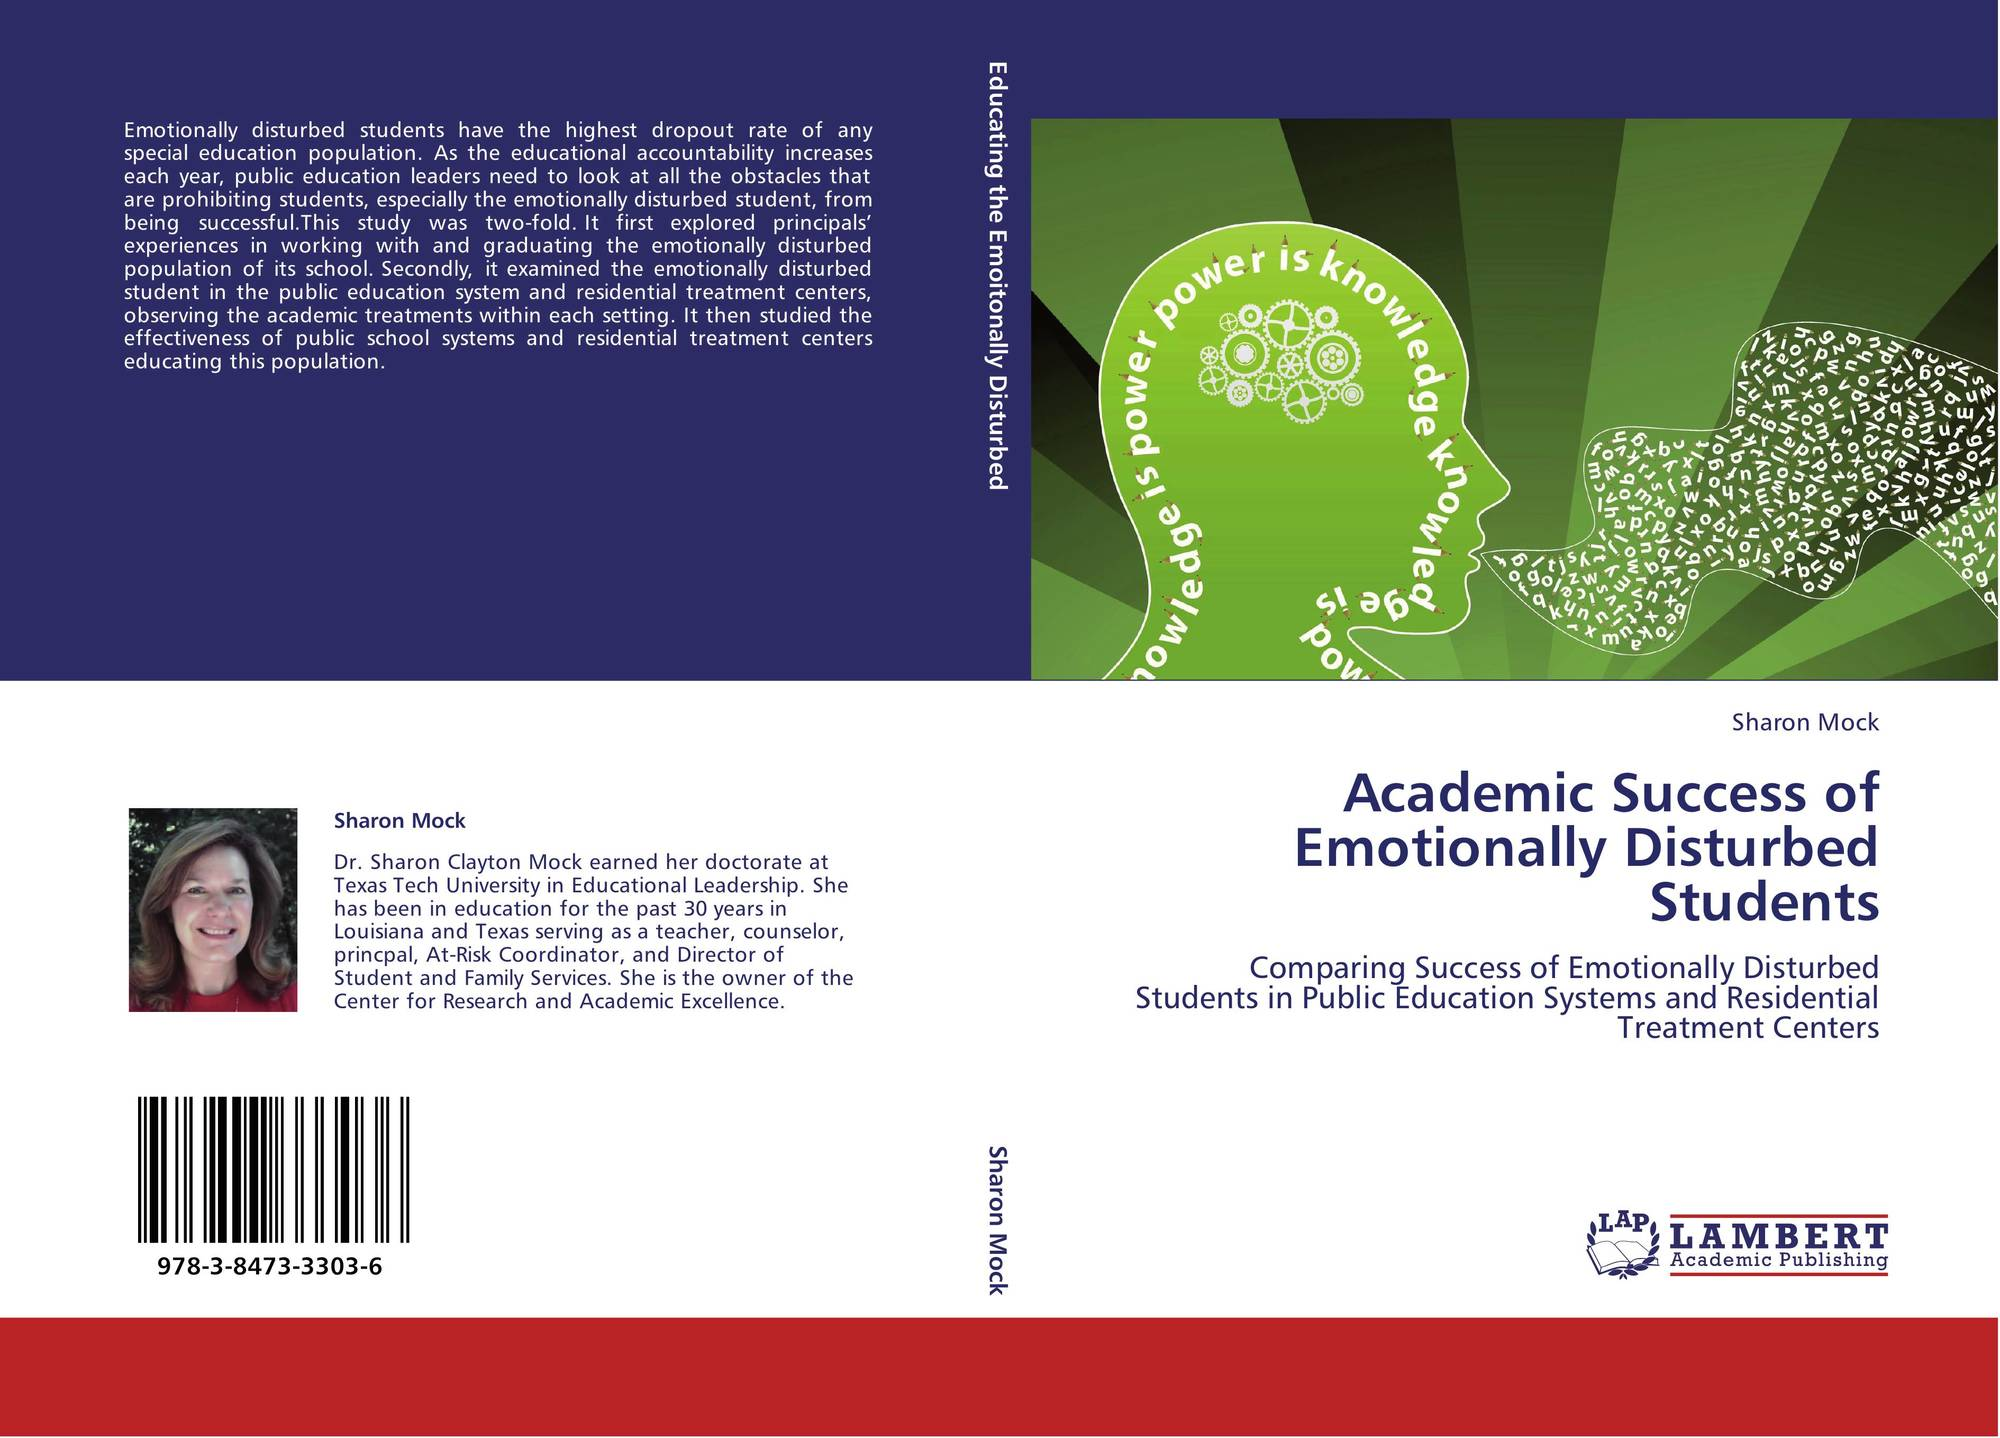 Emotionally Disturbed Students At >> Academic Success Of Emotionally Disturbed Students 978 3